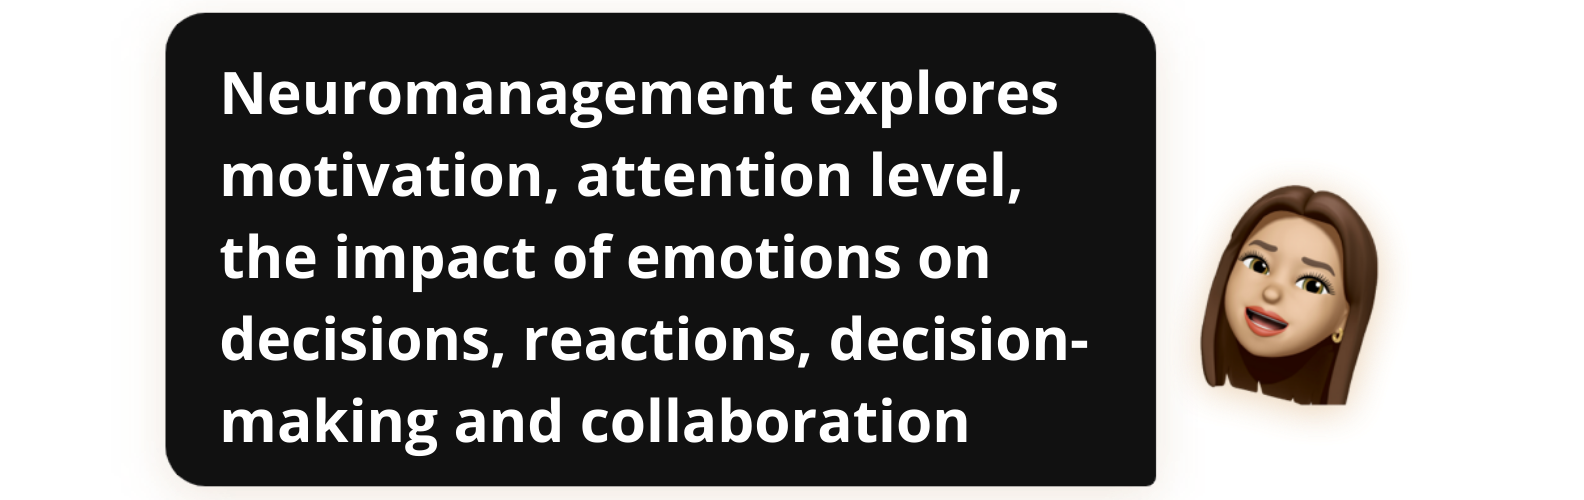 Neuromanagement explores motivation, attention level, the impact of emotions on decisions, reactions, decision-making and collaboration - Popwork